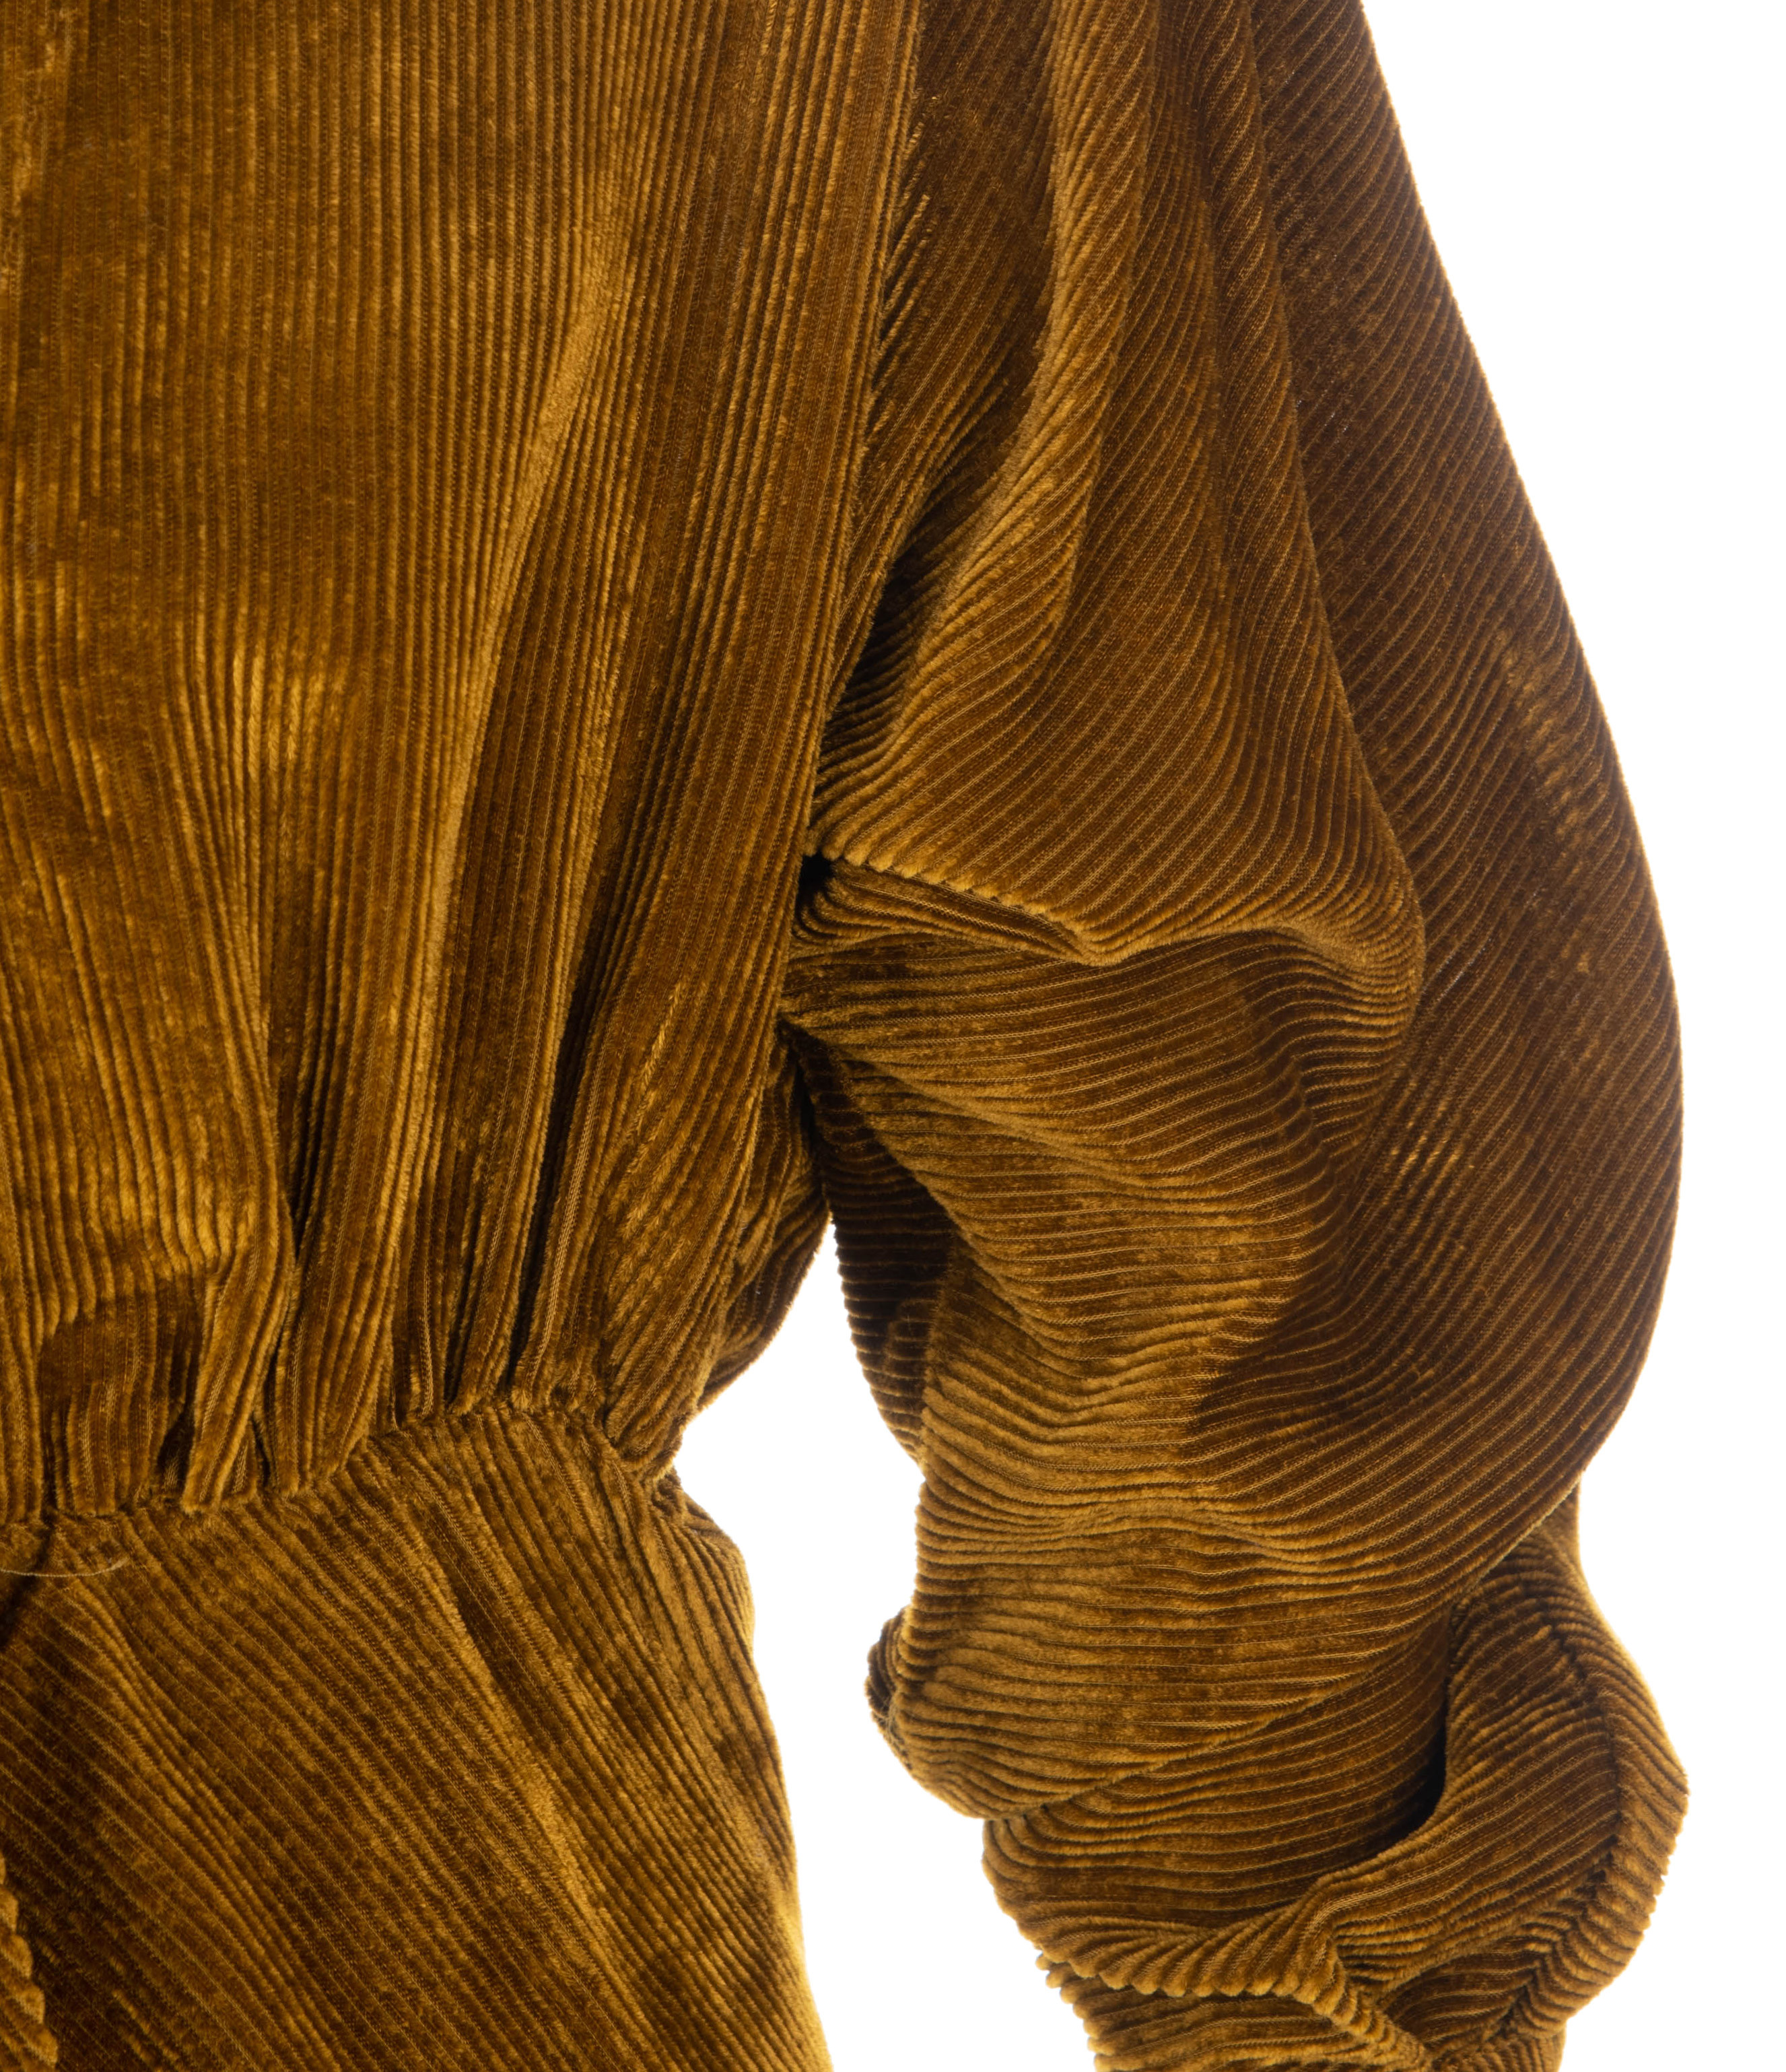 VALENTINE GAUTHIER - Robe May Goldwood Bowie